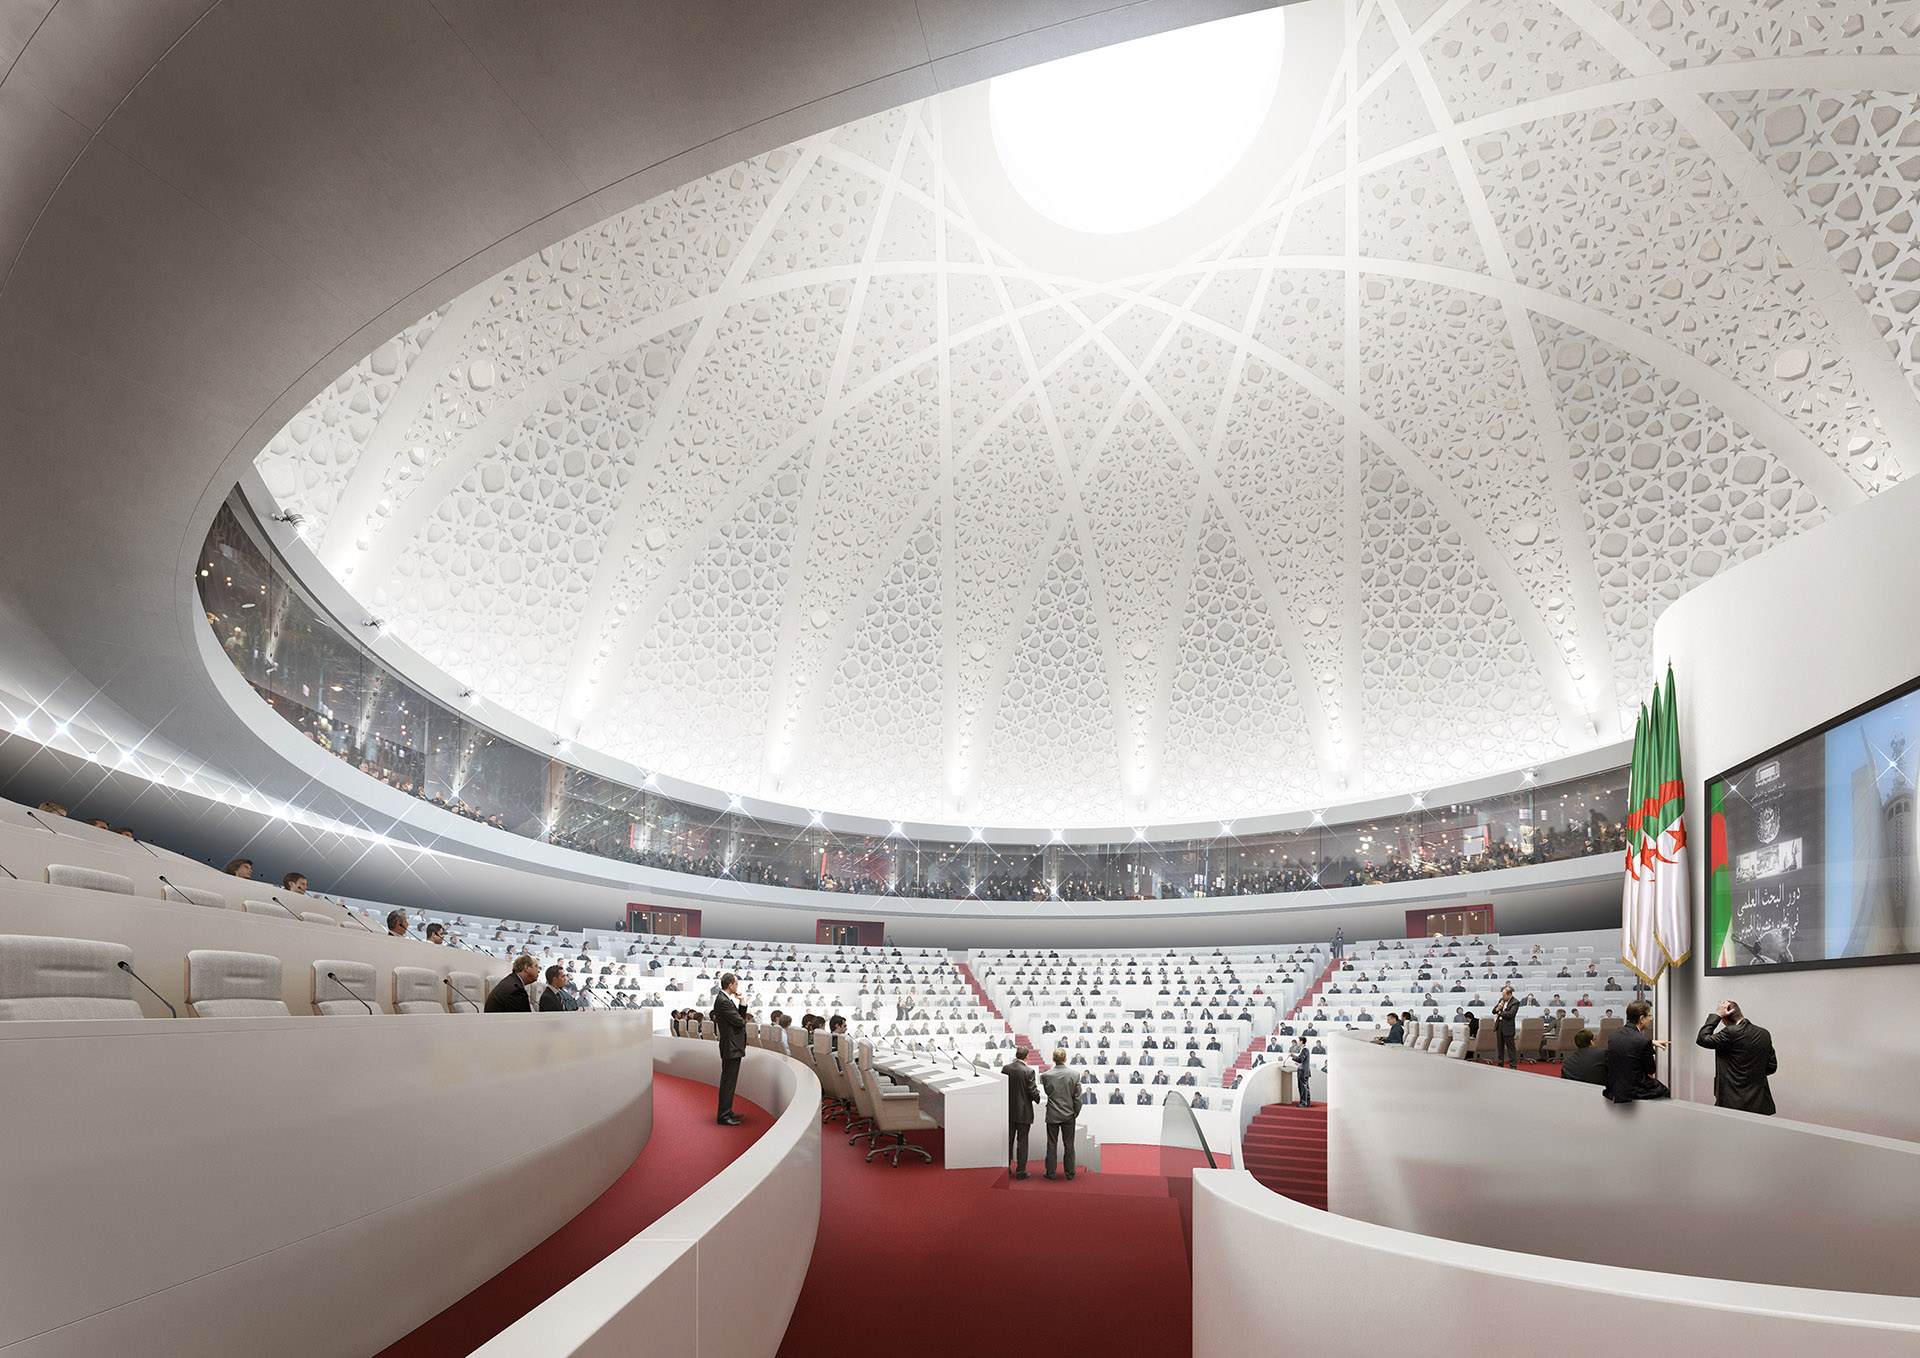 Image de communication - BAM - Architectes - Parlement en Algérie